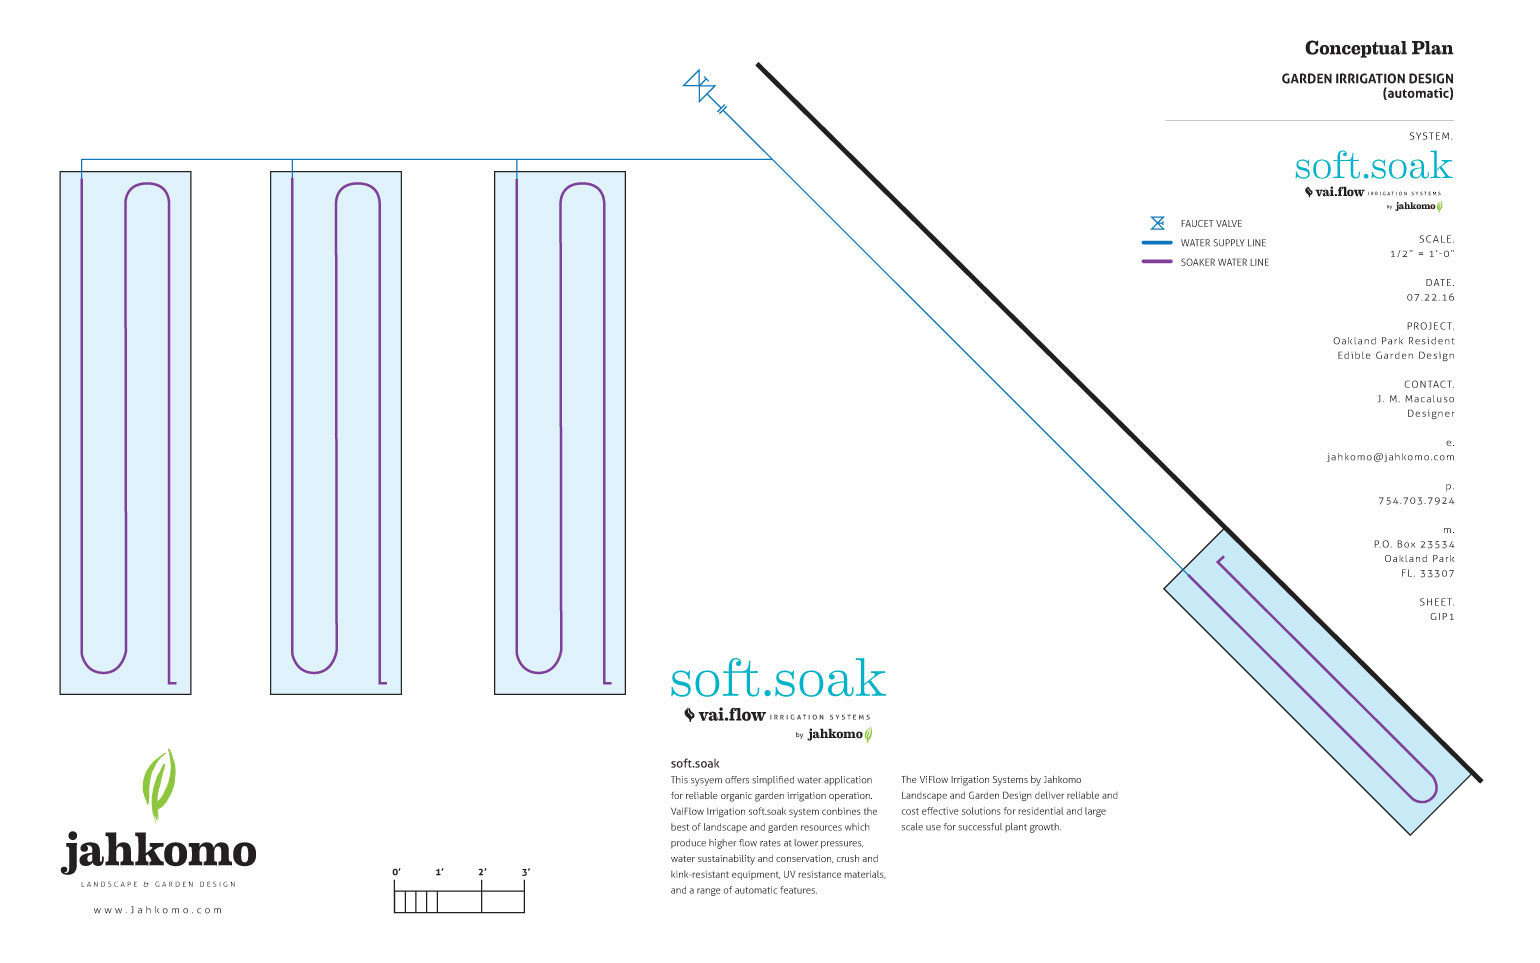 soft-soak-vai-flow-irrigation-design-oakland-park-2